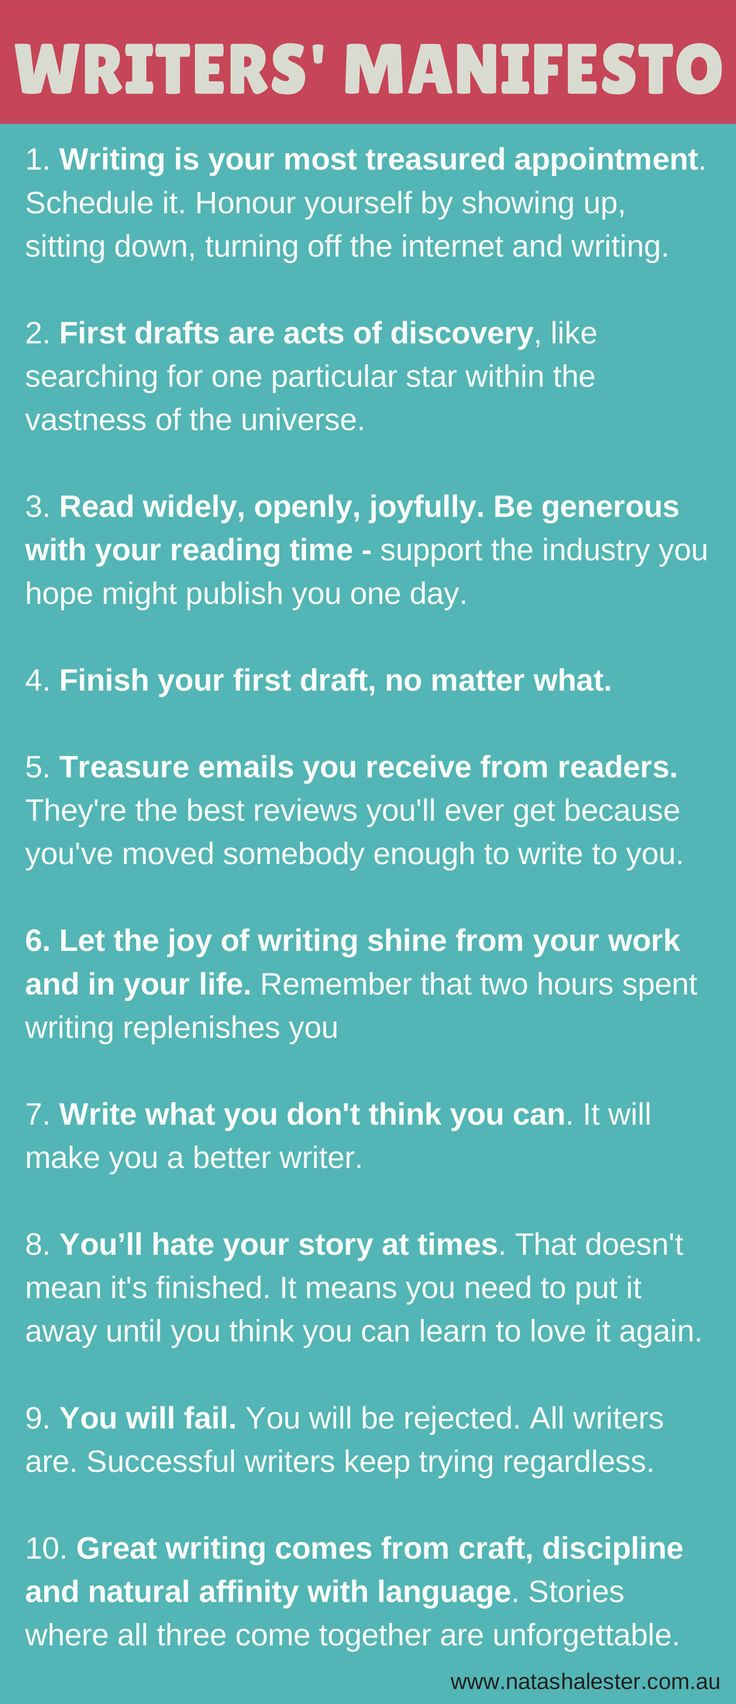 A Manifesto For Writers #WriteTips #AmWriting #Writing